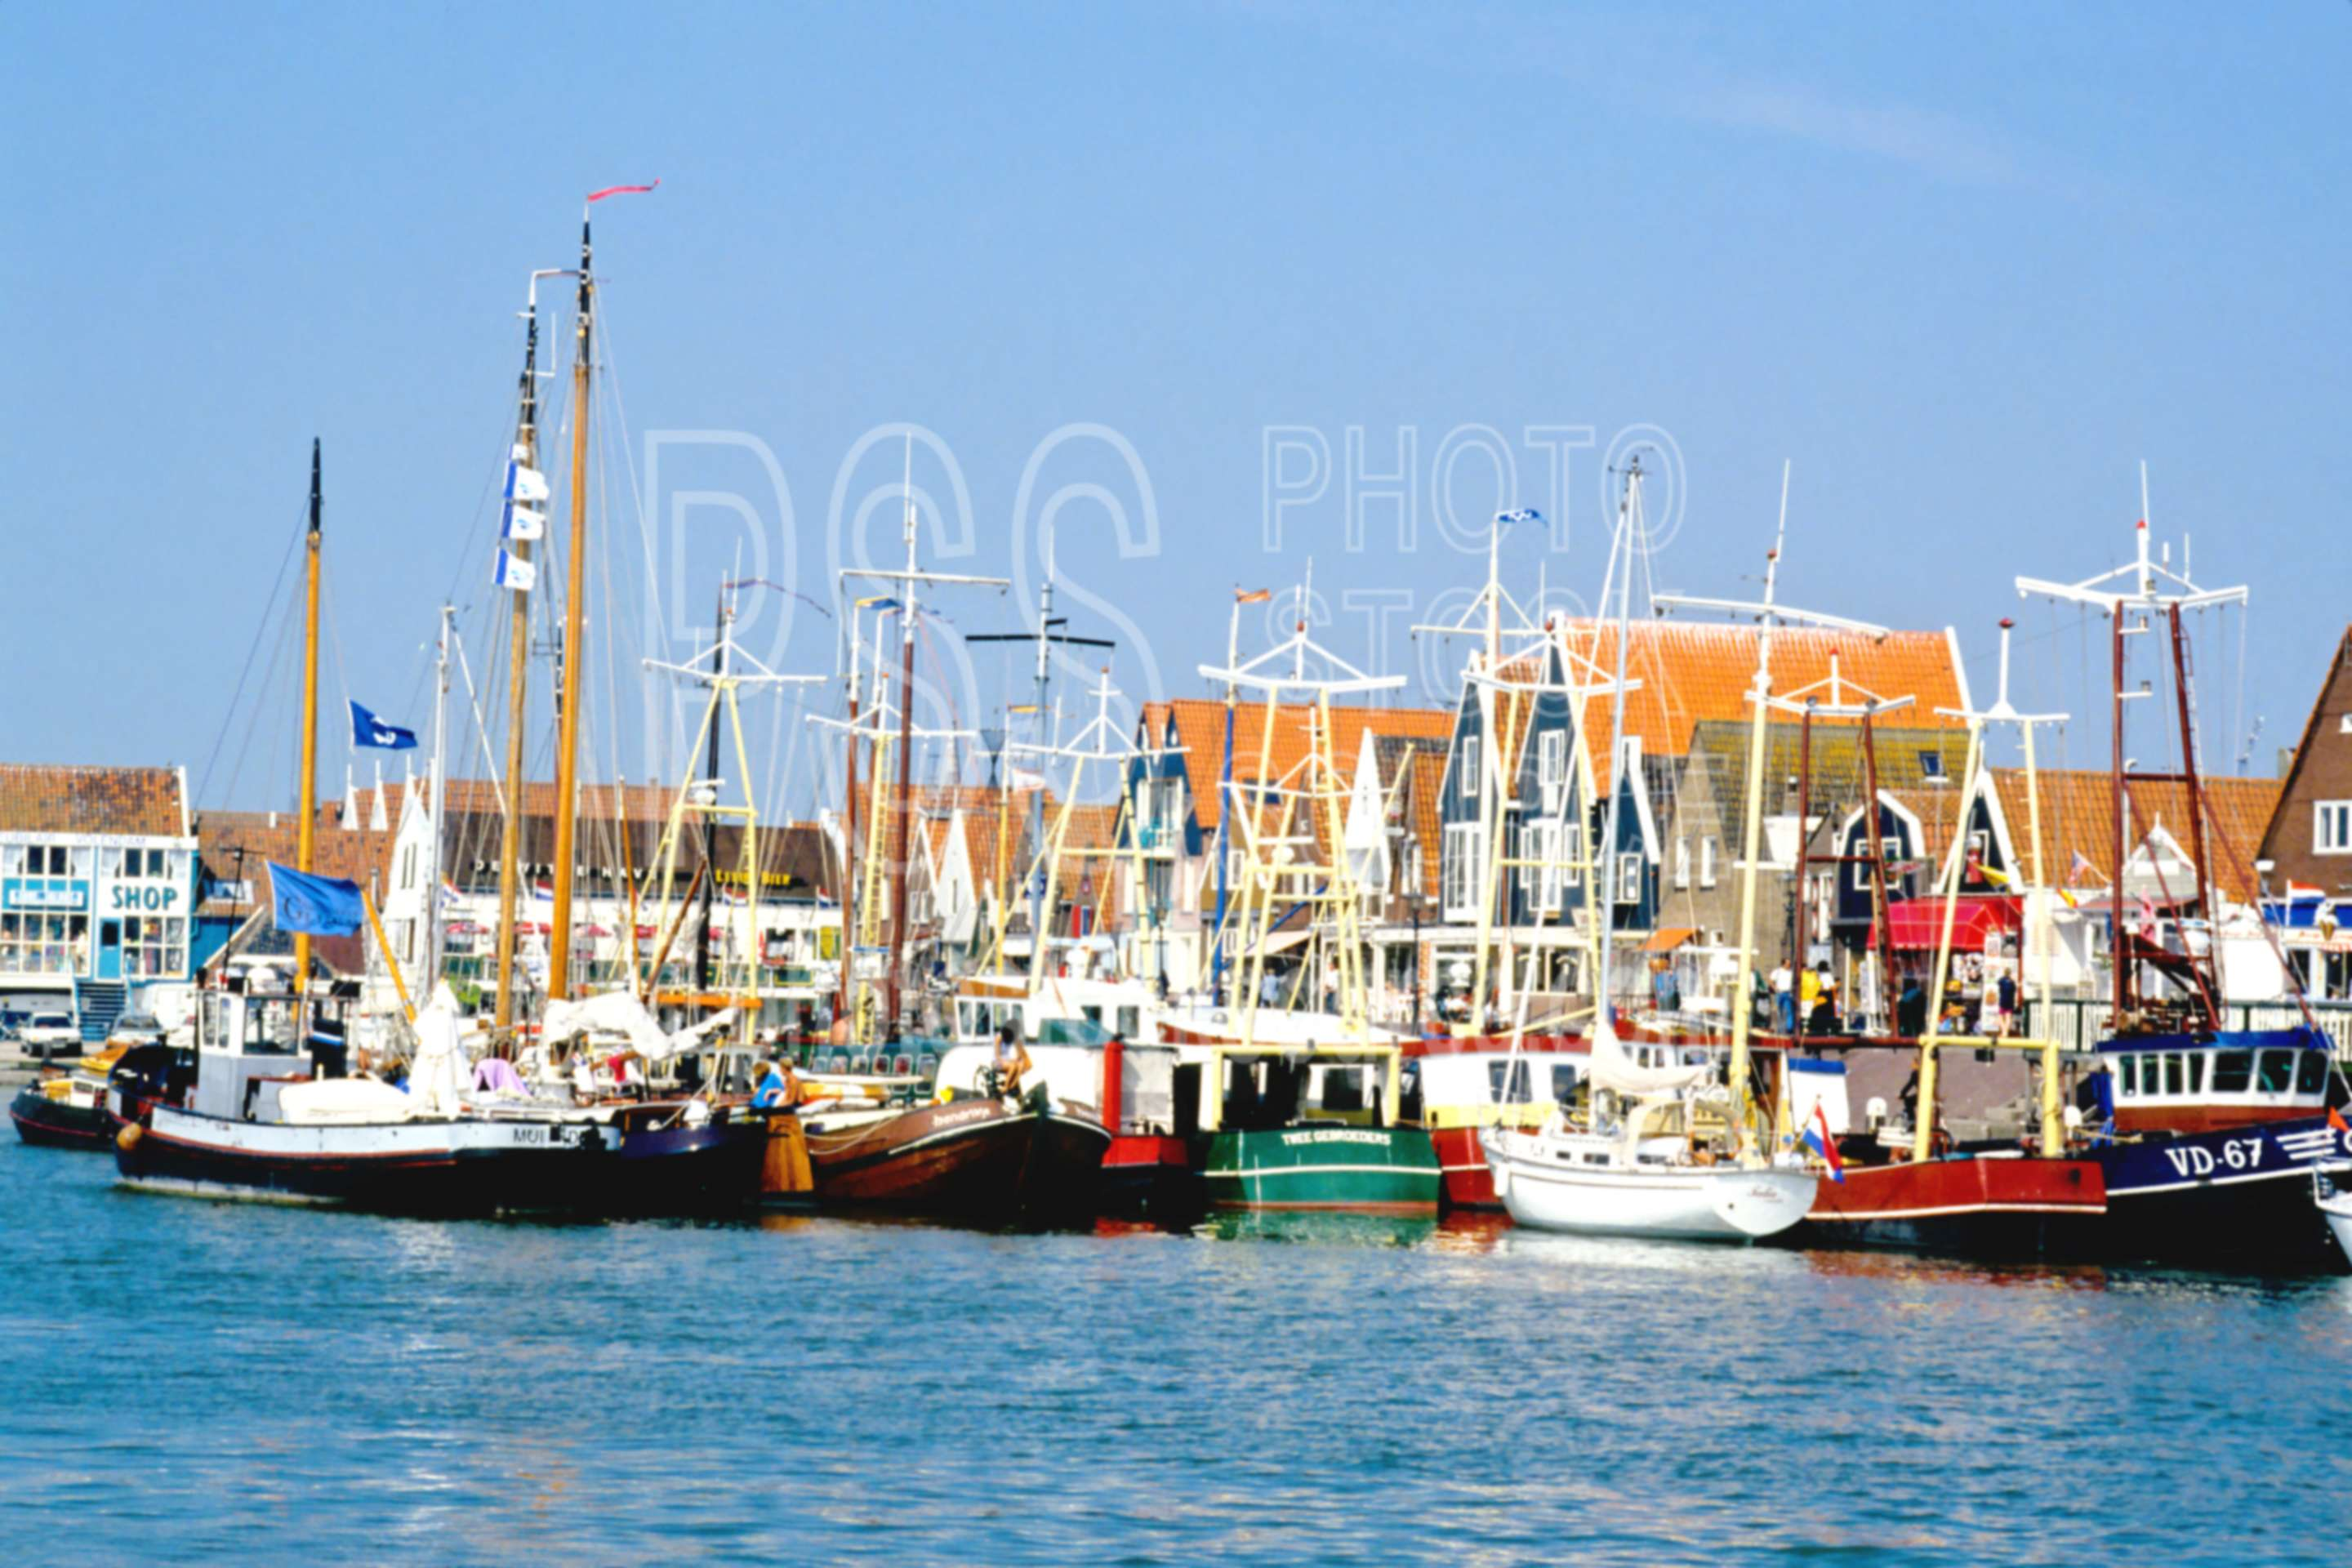 Boats in the Harbor,europe,harbor,holland,boats